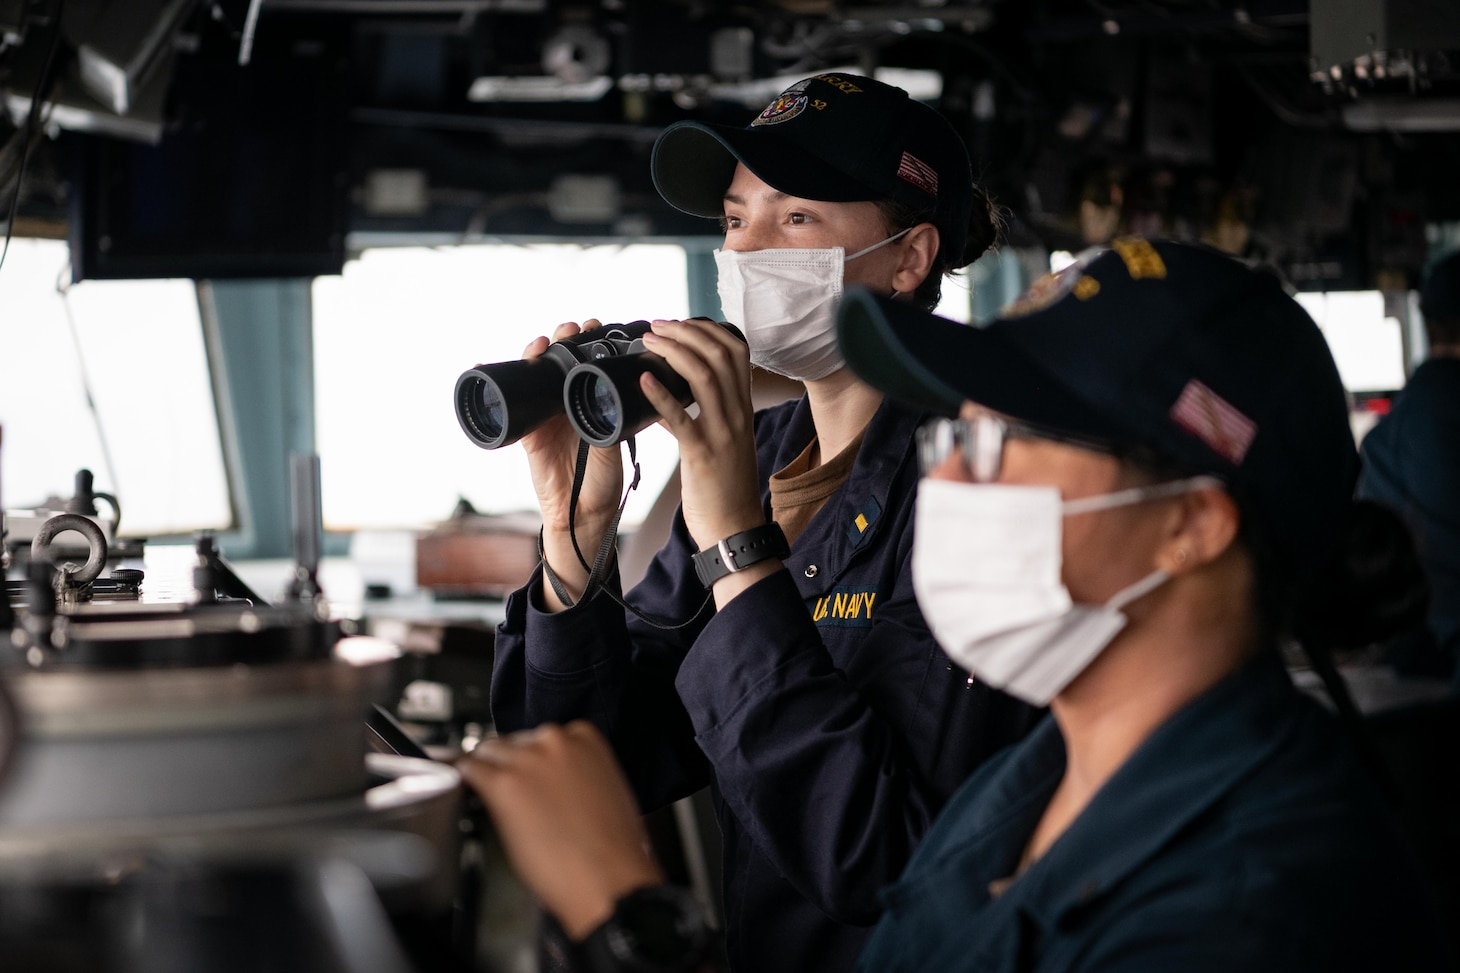 TAIWAN STRAIT (Nov. 20, 2020) – Ensign Antonia Vinci, from St. Petersburg, Fla., scans the horizon for contacts on the bridge of the guided-missile destroyer USS Barry (DDG 62) as the ship conducts routine underway operations in the Taiwan Strait. Barry is assigned to Destroyer Squadron (DESRON) 15, the Navy's largest forward-deployed DESRON and the U.S. 7th Fleet's principal surface force, forward-deployed to the U.S. 7th Fleet area of operations in support of a free and open Indo-Pacific. (U.S. Navy photo by Lieutenant Junior Grade Samuel Hardgrove)